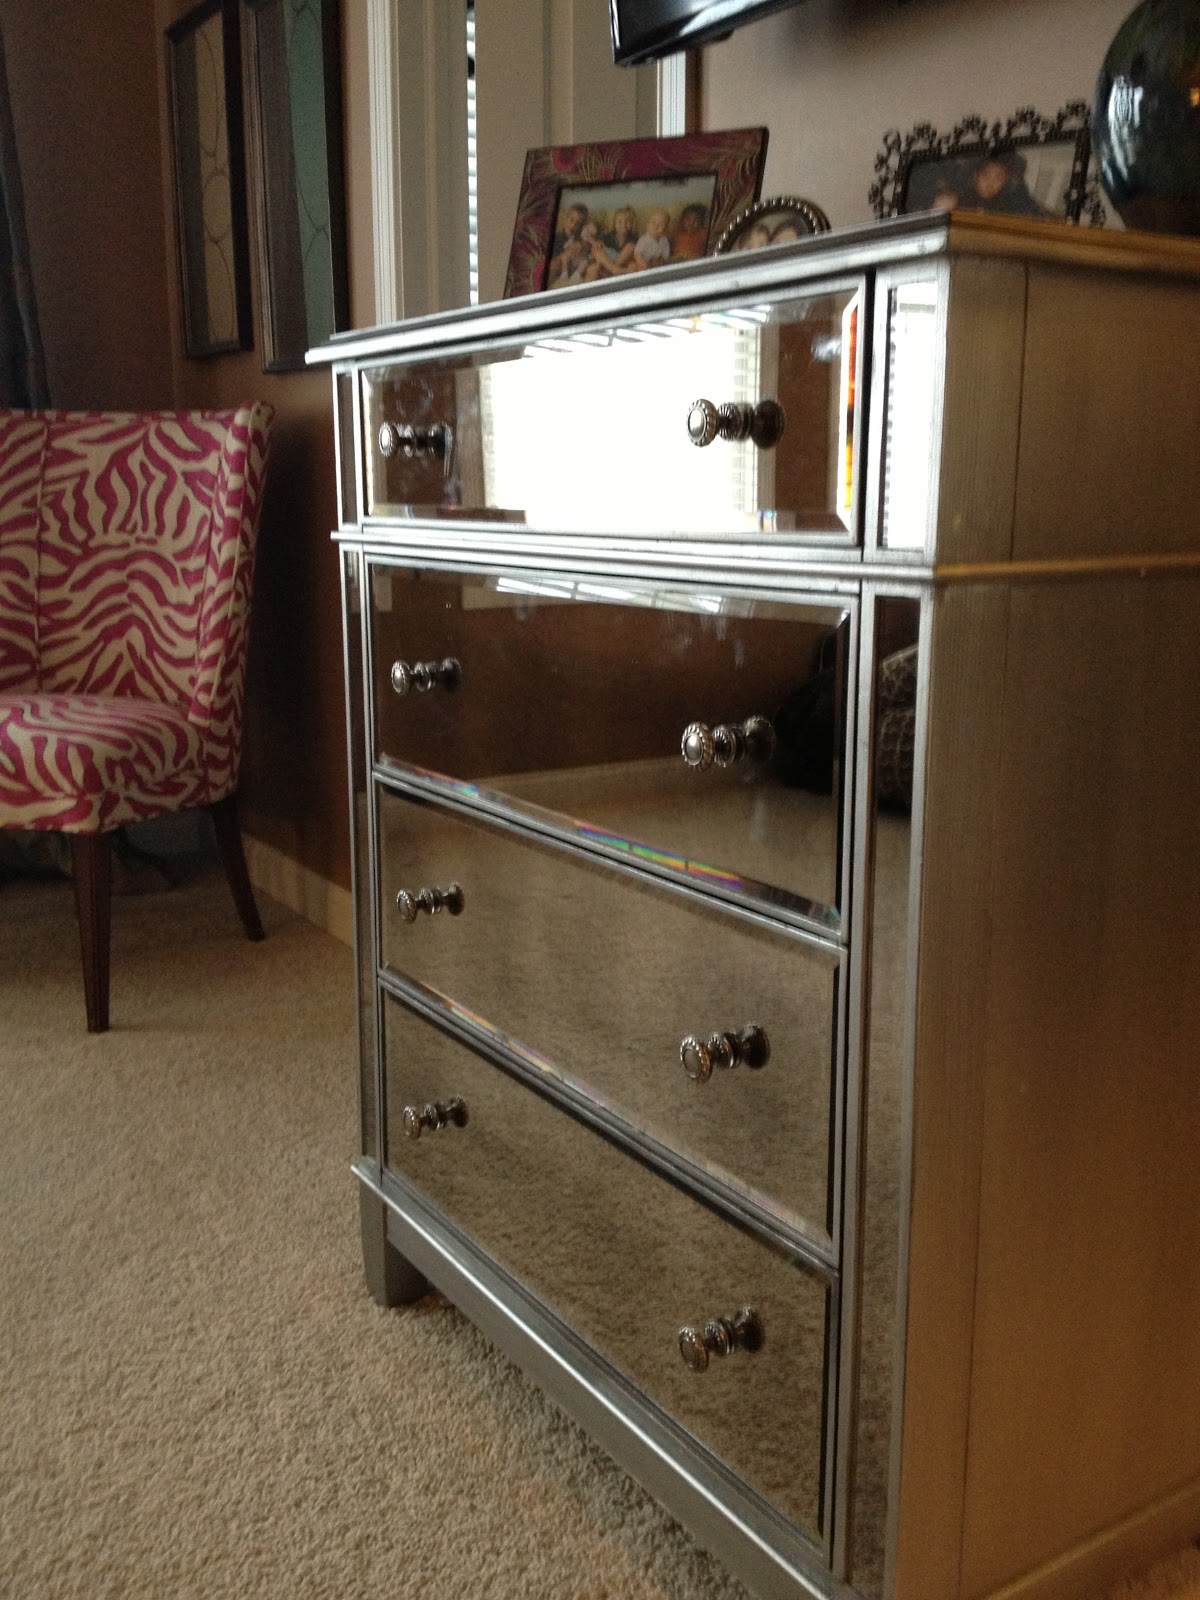 four-drawers-mirrored-chest-plus-animal-print-chair-and-rug-for-home-interior-design-ideas-mirrored-chest-drawers-mirrored-buffet-table-mirrored-vanity-mirrored-media-console-mirrored-chest-chester-dr